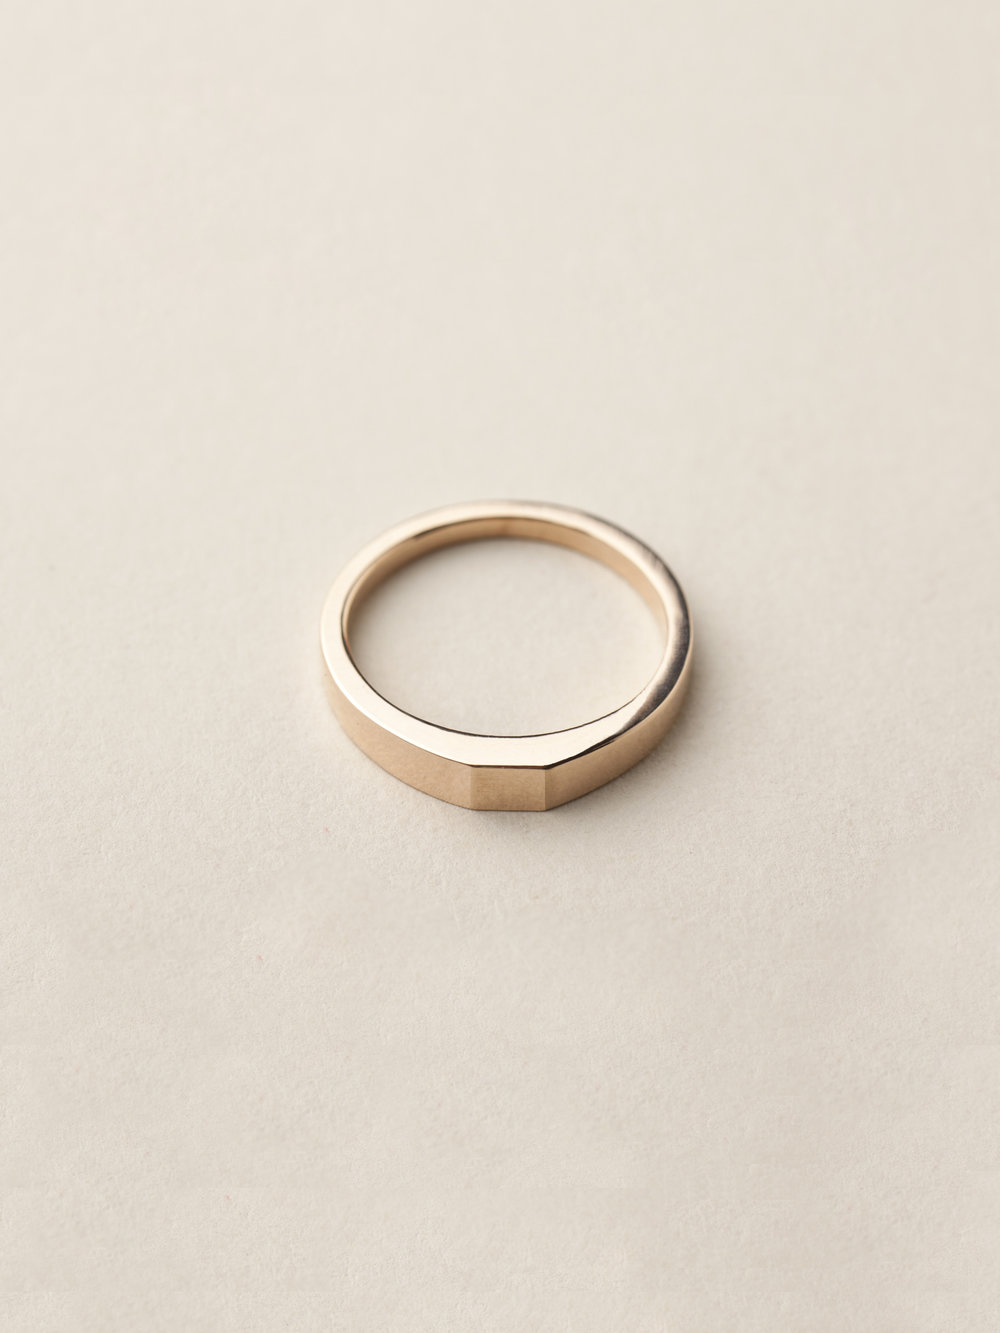 Siegelring Minima, klein quadratisch in 585 Rosegold  Signet ring Minima, small square in 14ct rose gold